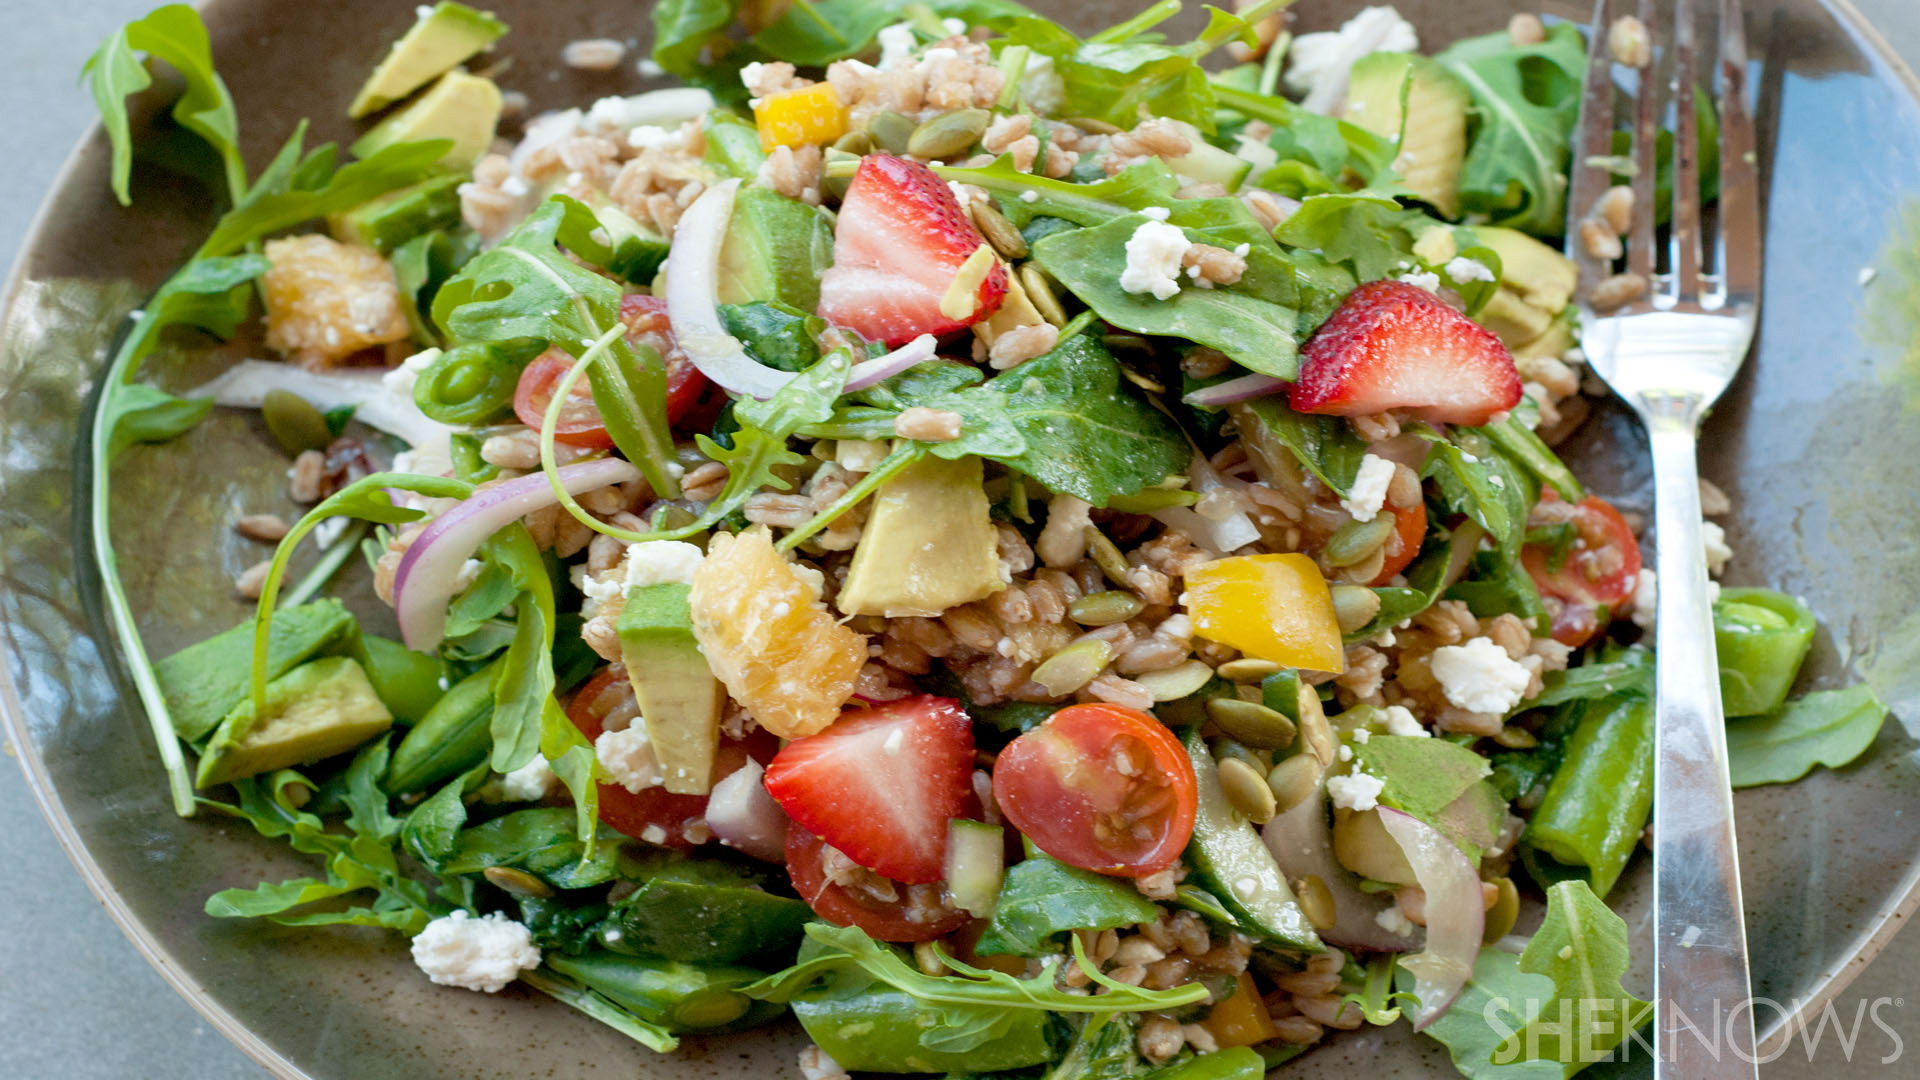 Farmers market farro salad with citrus recipe|